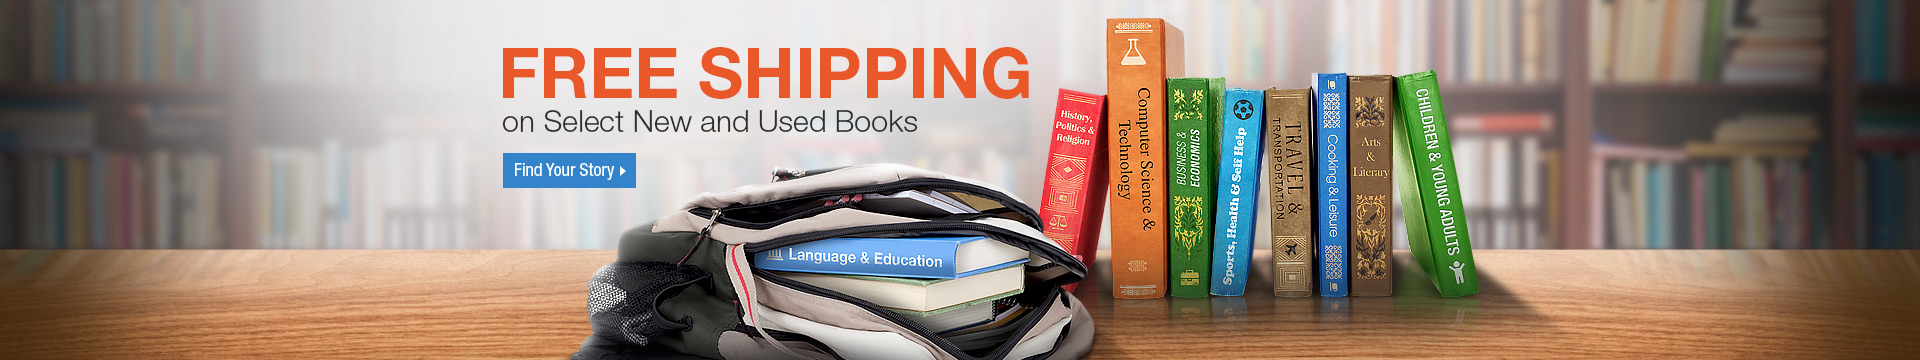 Free shipping on select new and used books